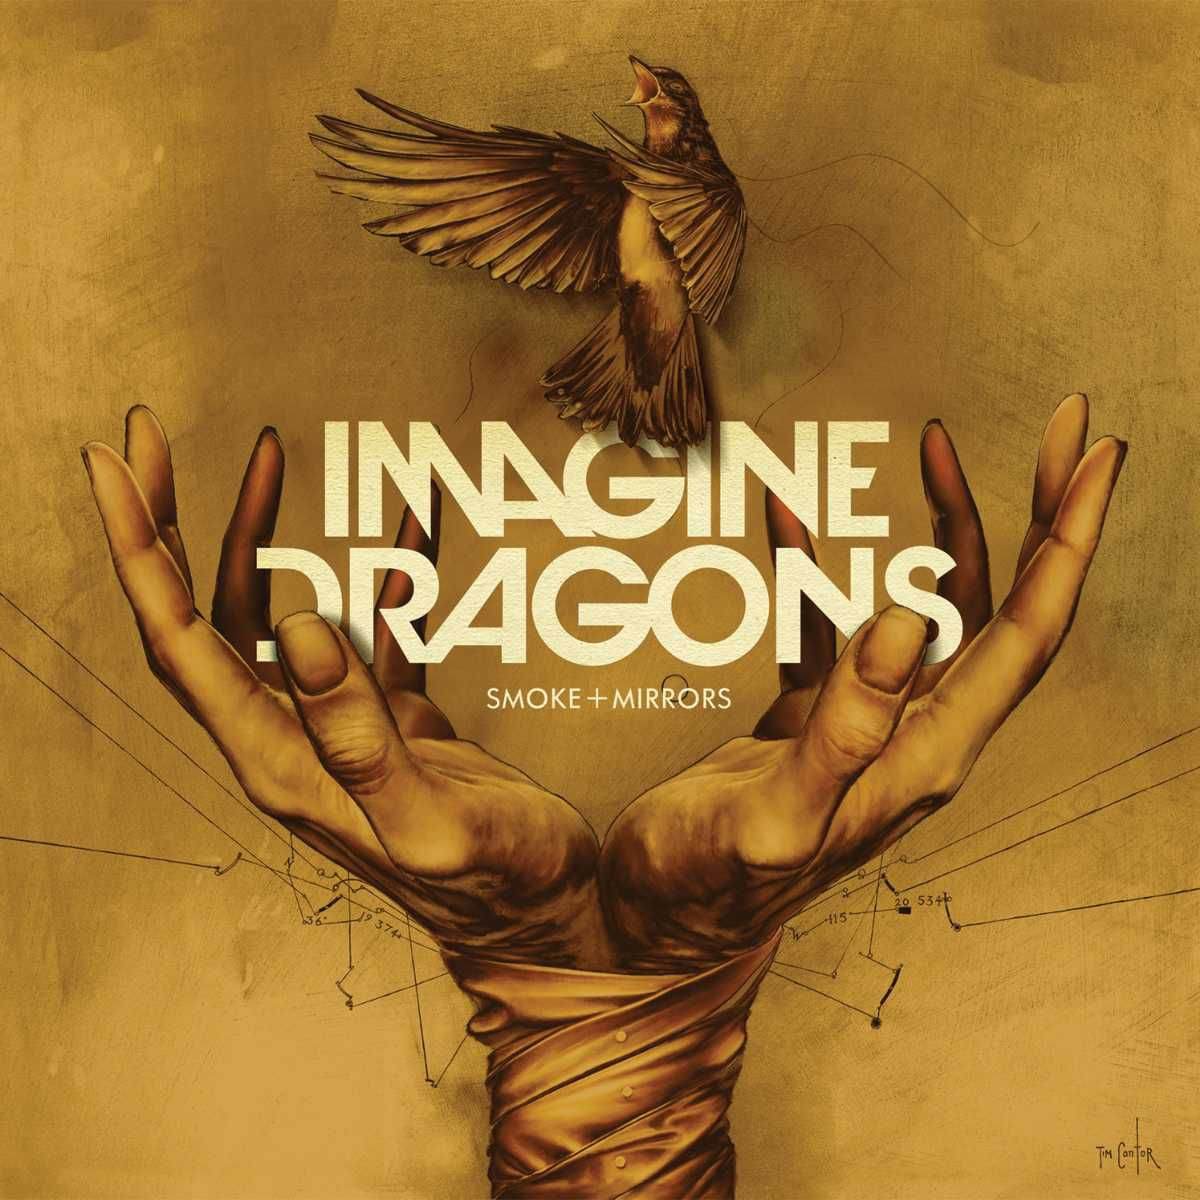 Smoke + Mirrors Digital Album (Deluxe Re-Issue)